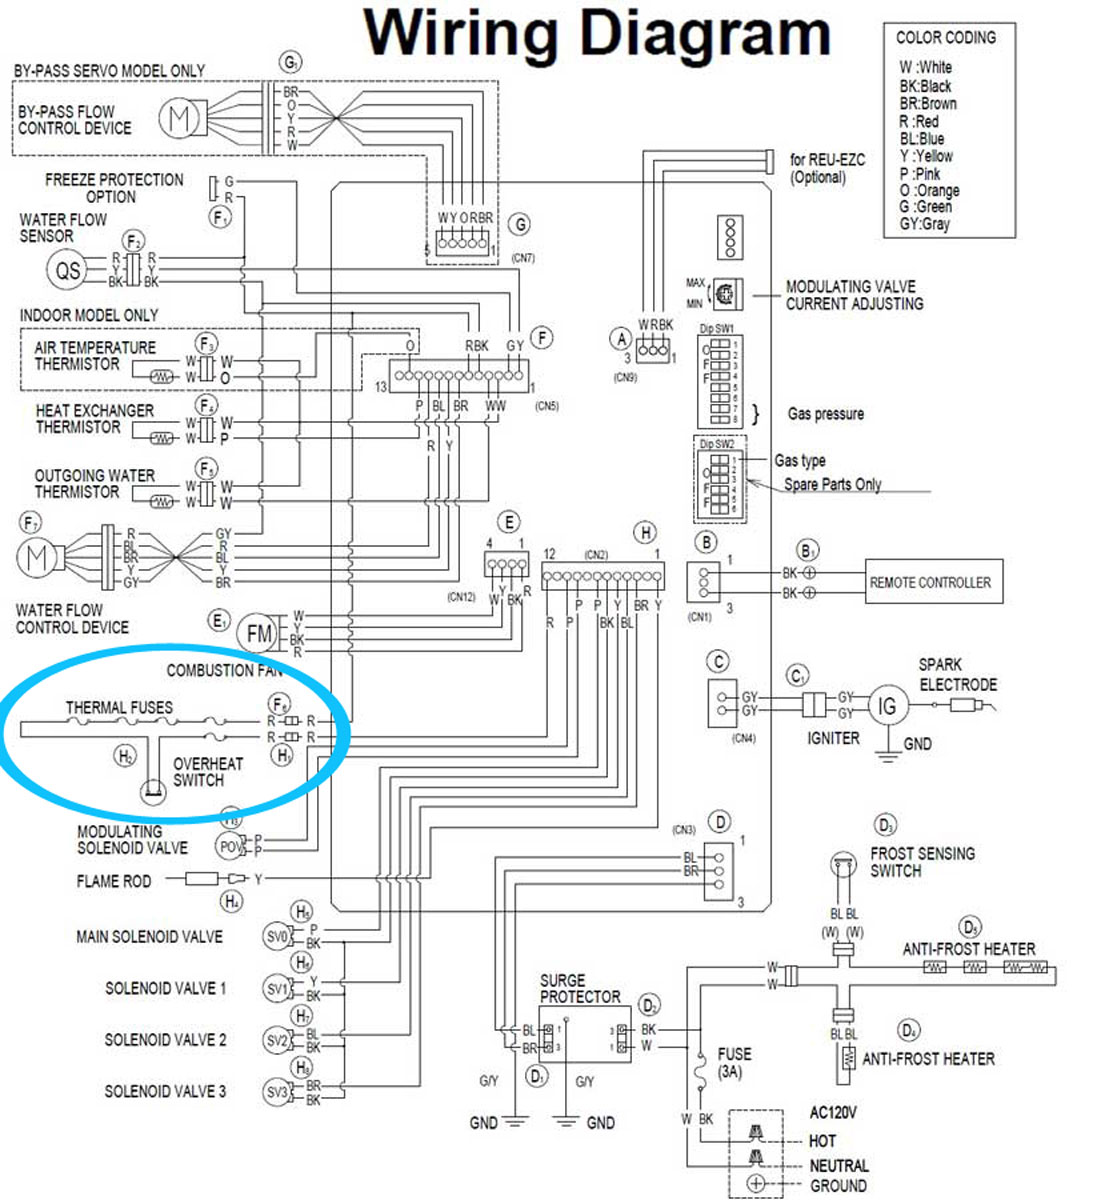 Tankless wiring 1200 fuses troubleshoot rheem tankless water heater rheem rte 18 wiring diagram at eliteediting.co